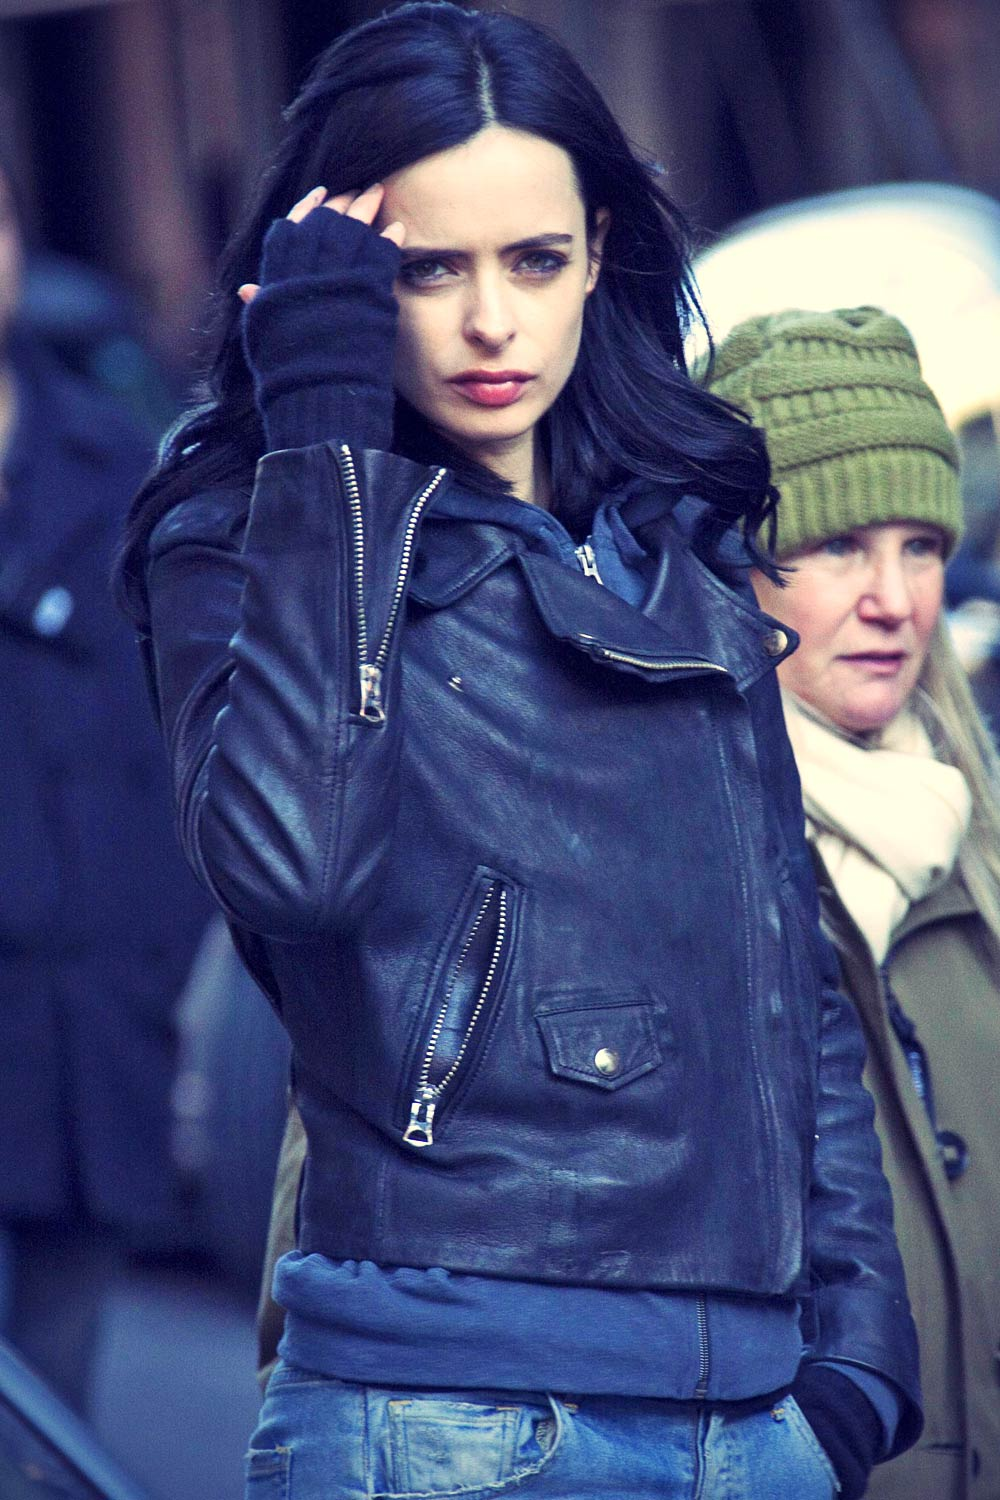 Krysten Ritter on the set of A.K.A. Jessica Jones